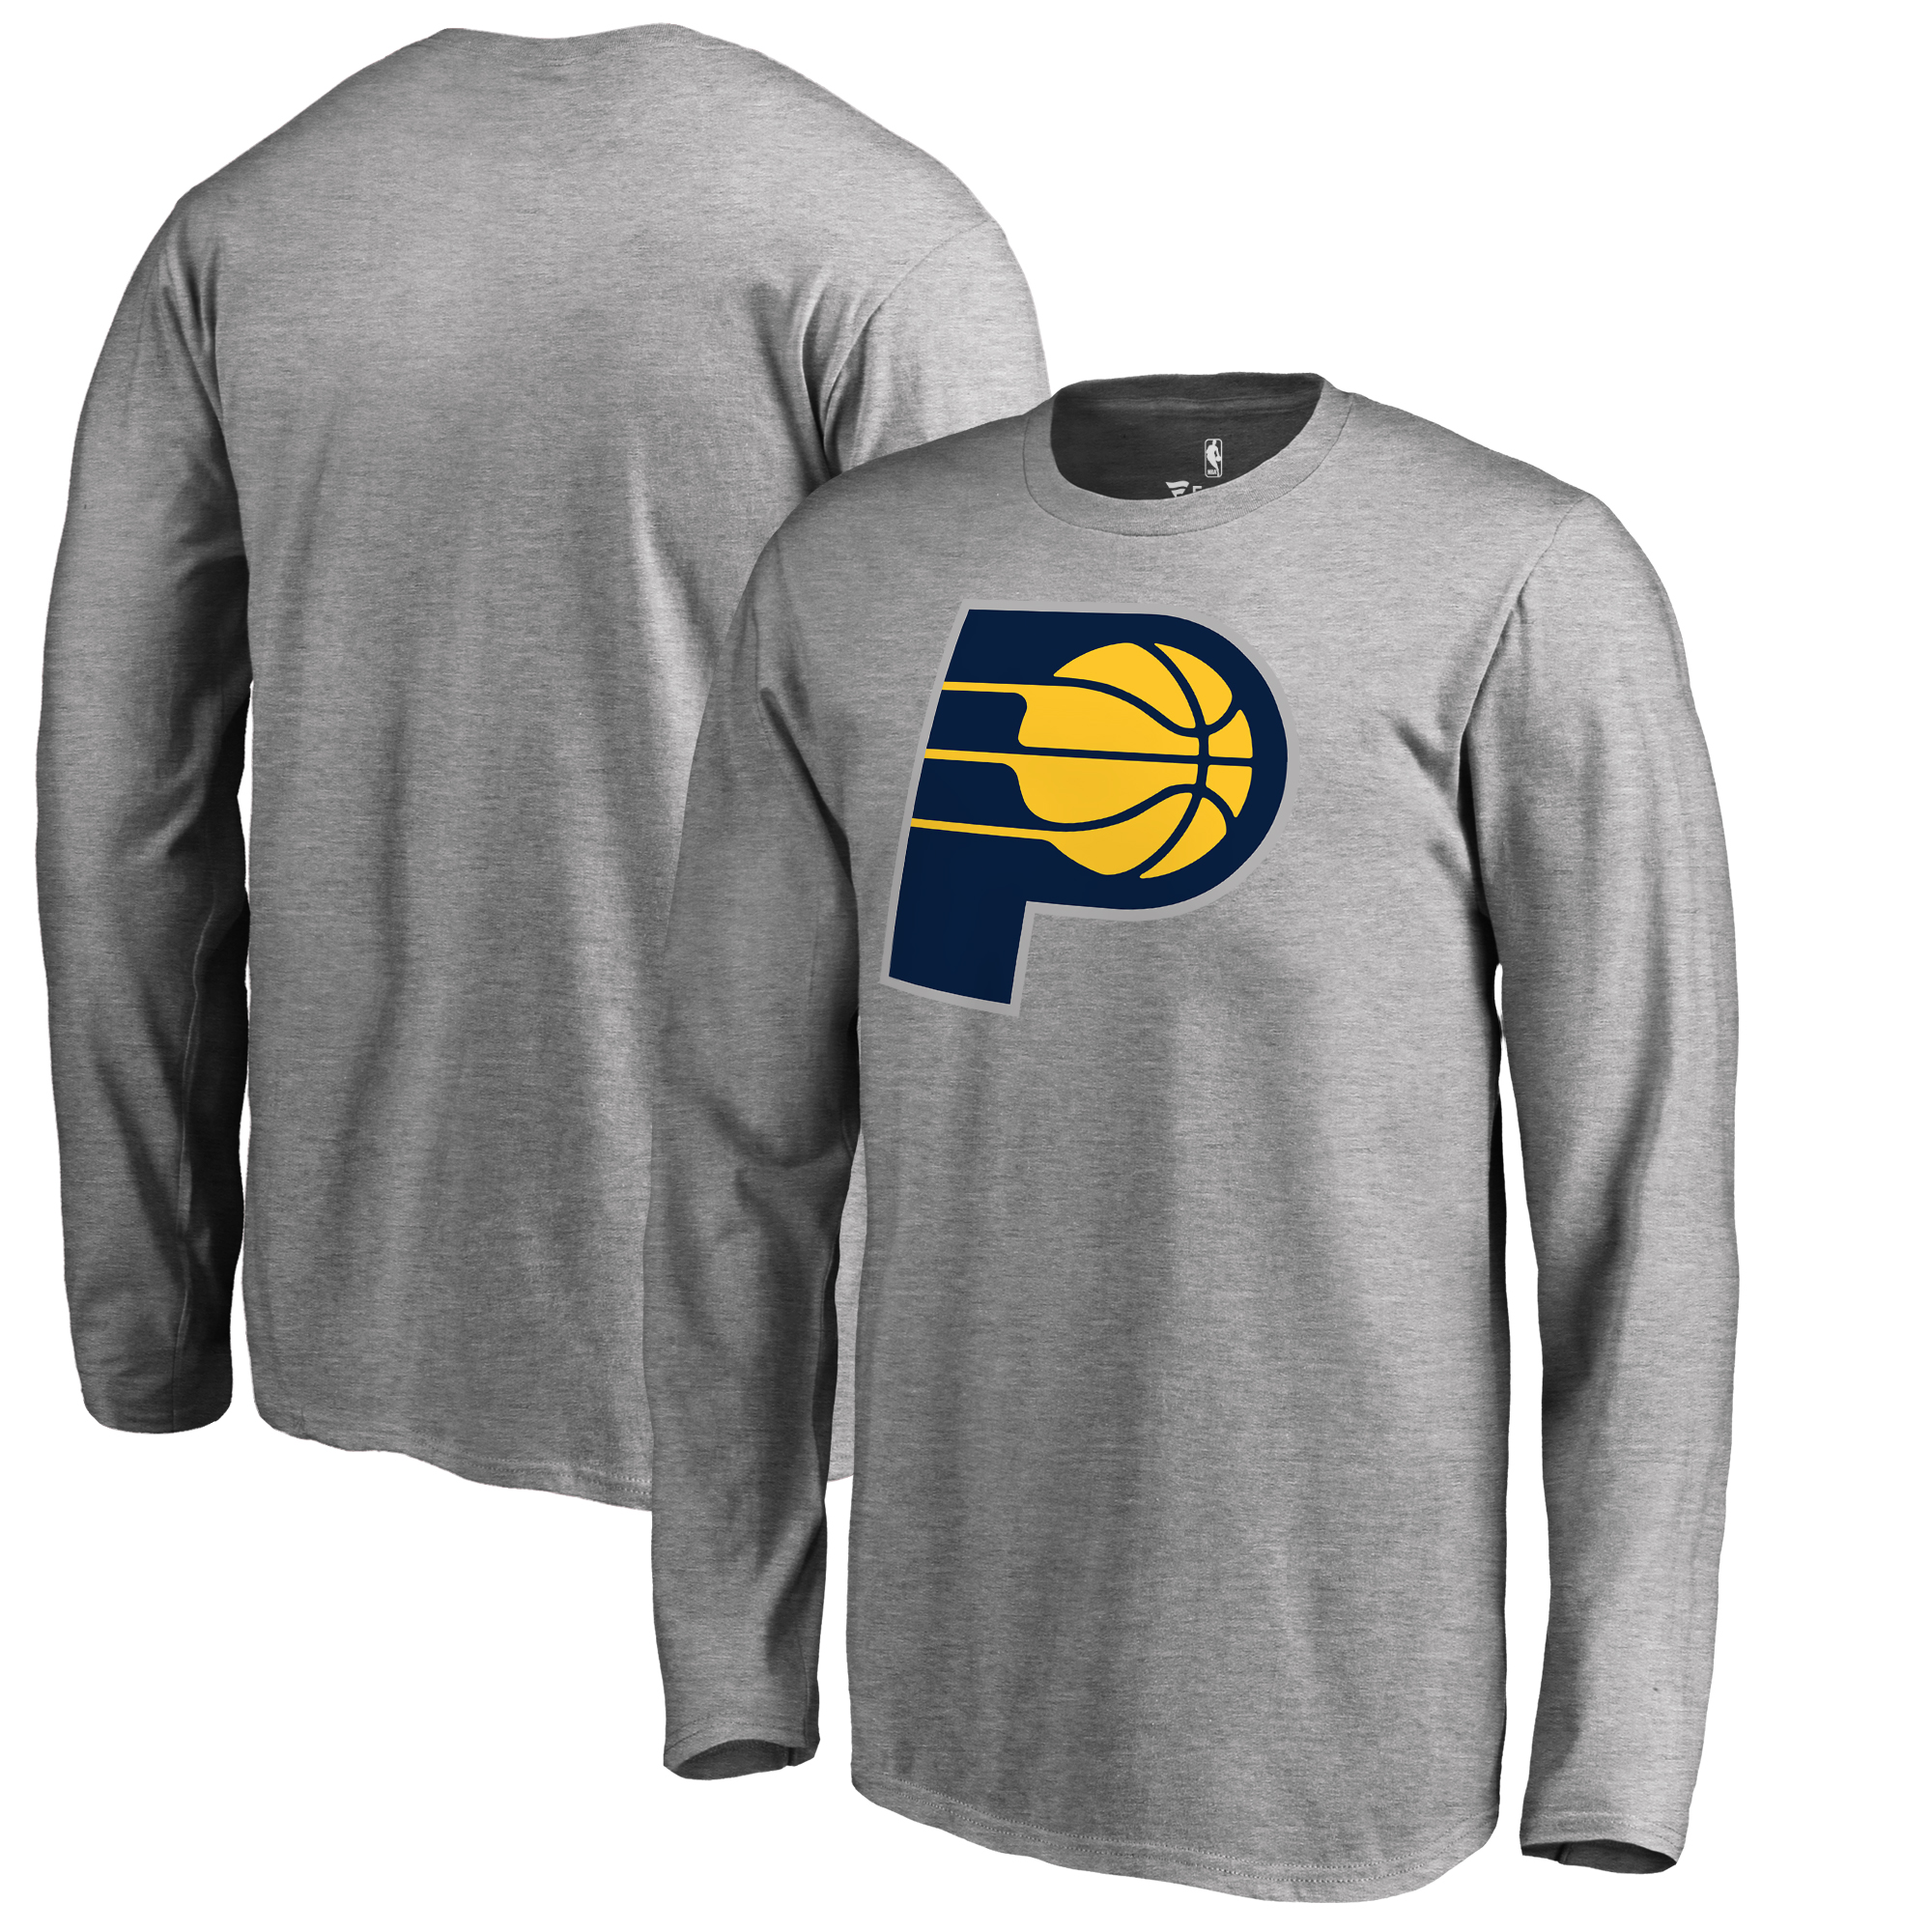 Indiana Pacers Fanatics Branded Youth Primary Logo Long Sleeve T-Shirt - Heathered Gray